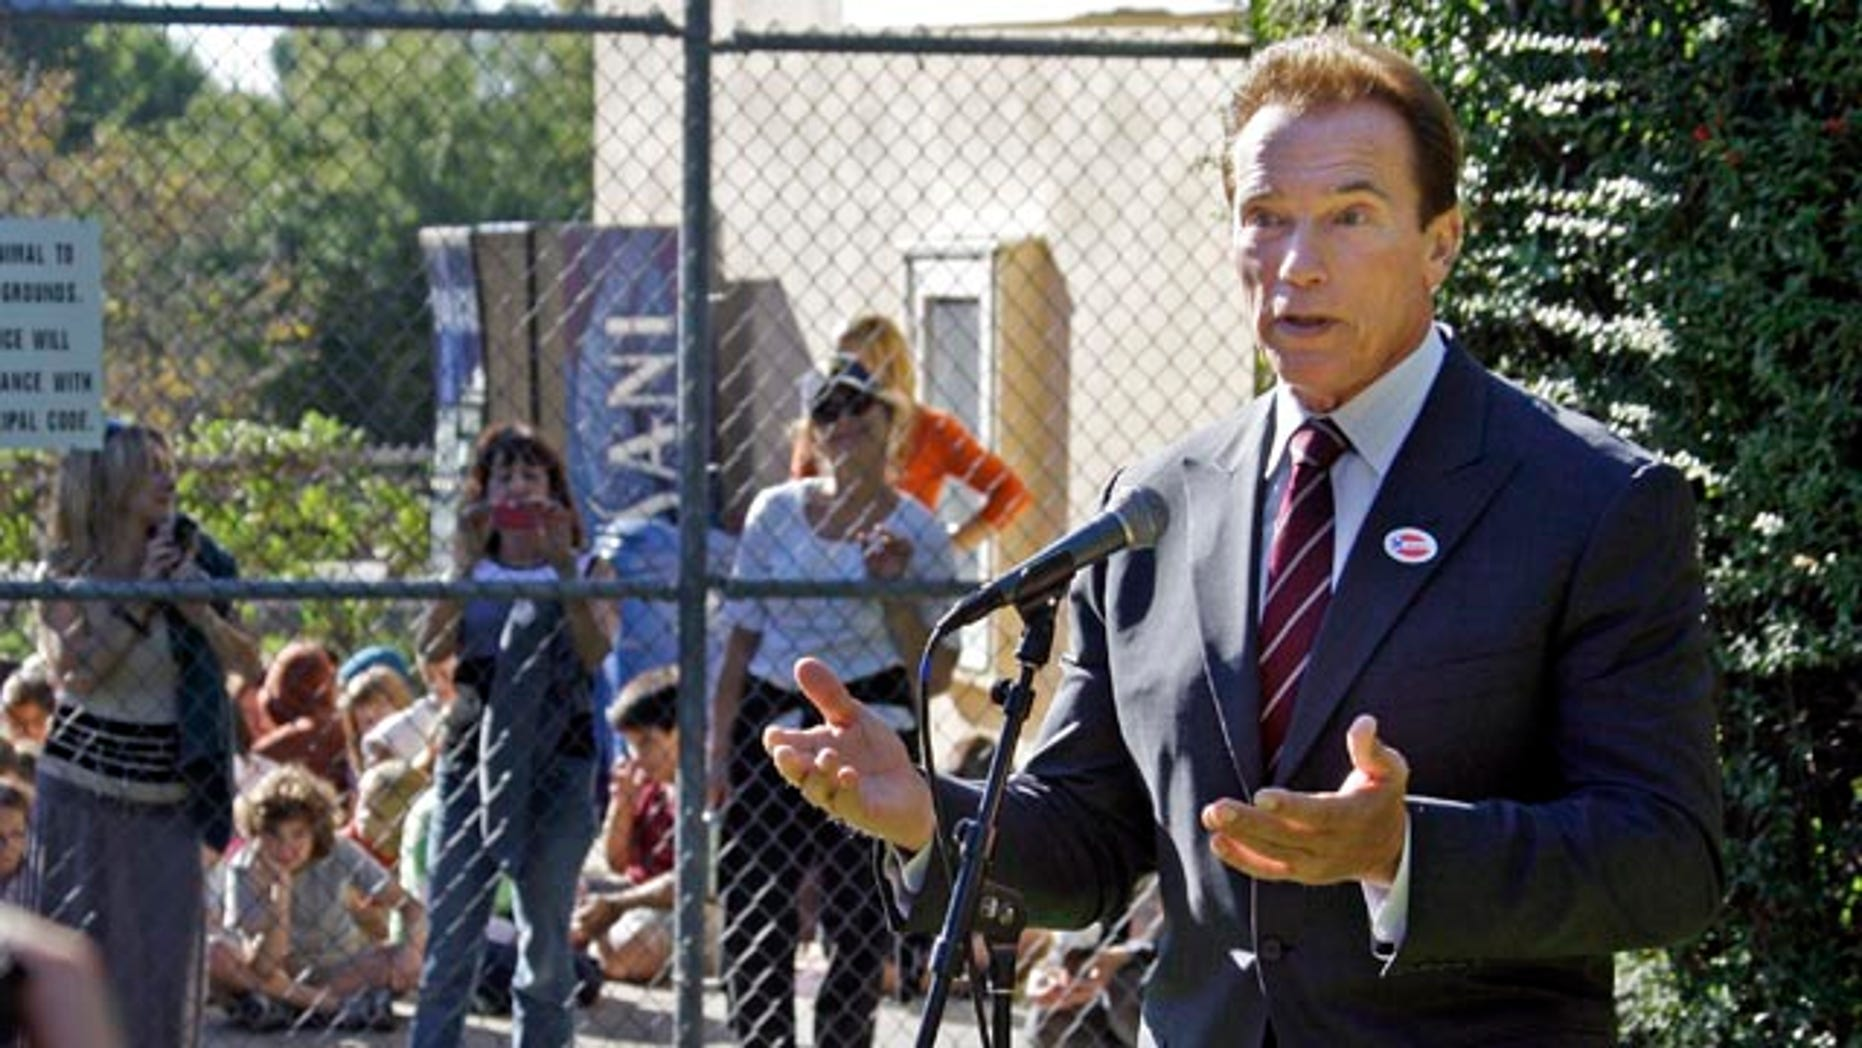 Calif. Gov. Arnold Schwarzenegger signed a law five weeks ago that made possession of up to an ounce of marijuana the equivalent of a traffic ticket.